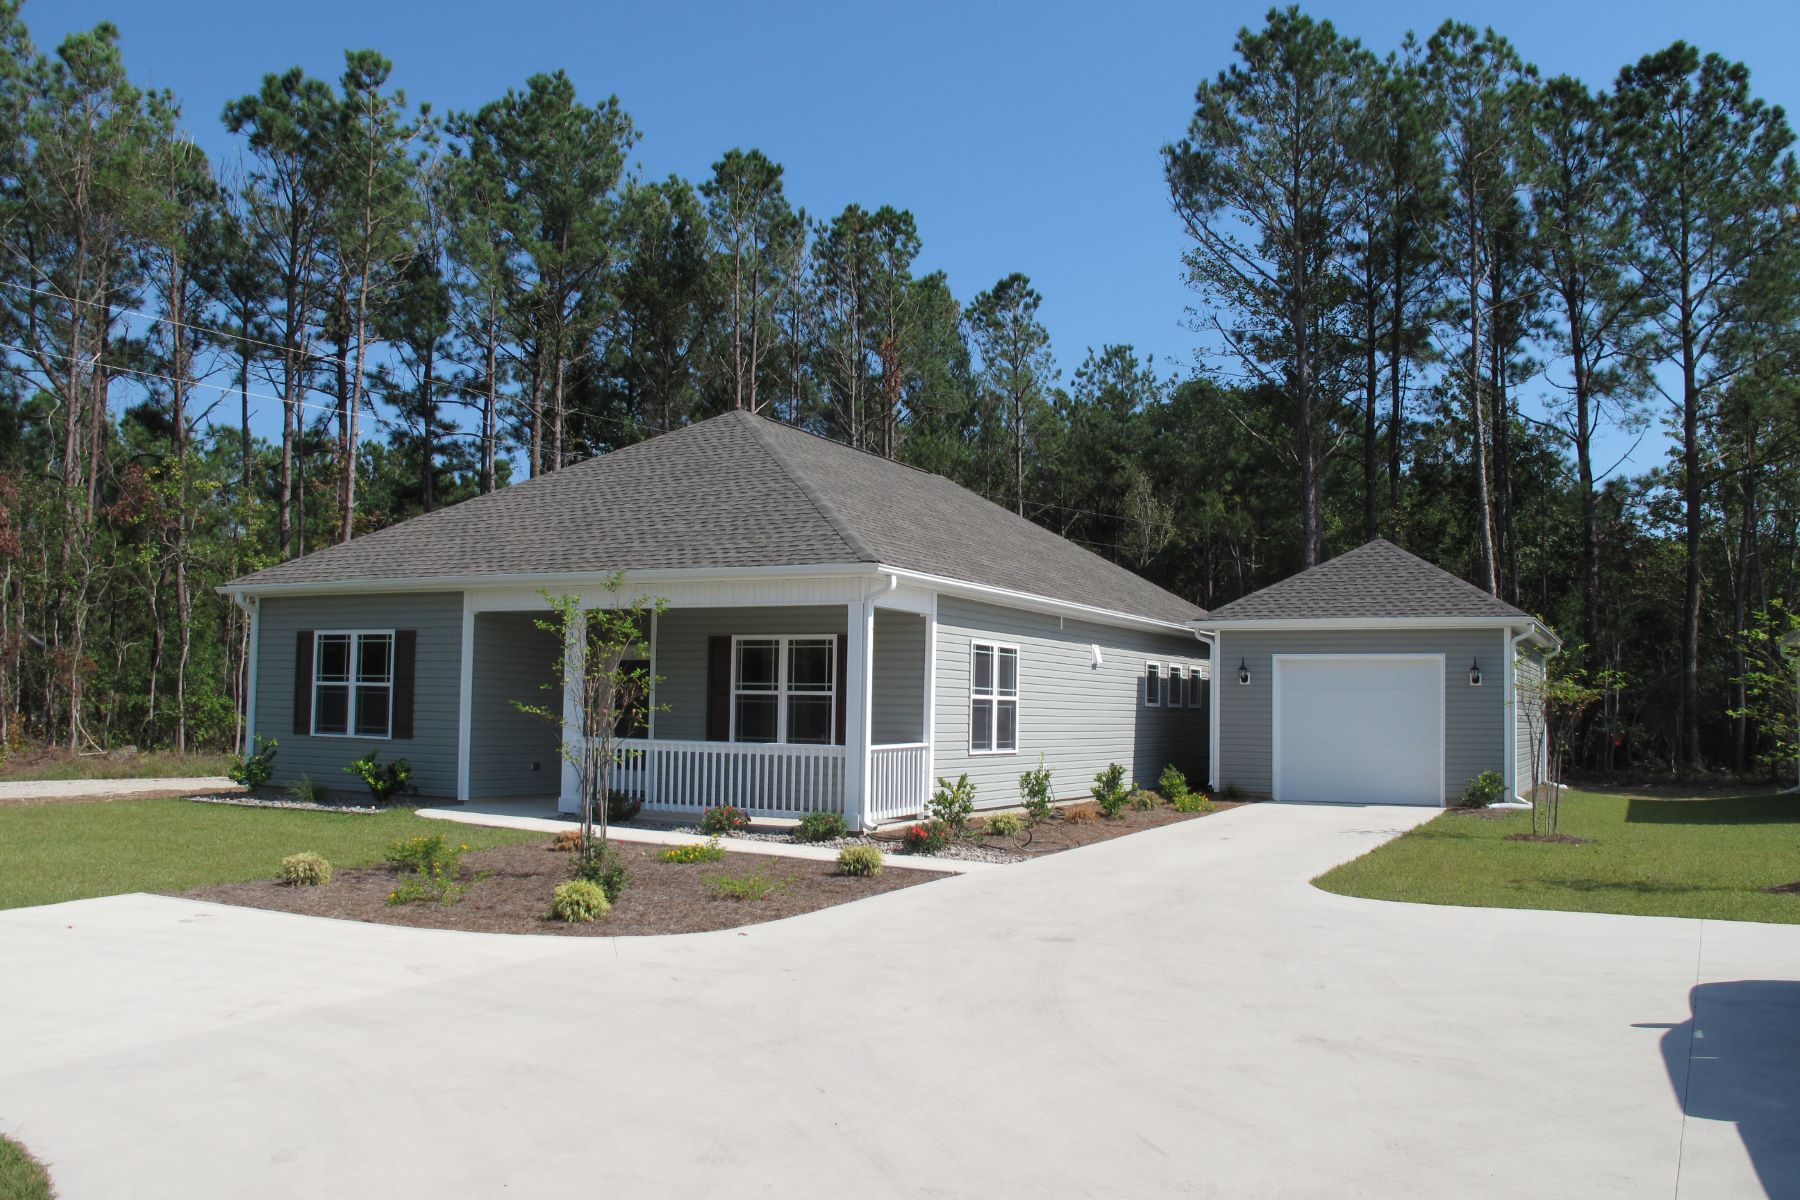 Single Family Homes for Sale at Quality Pre-Construction Offer 1302 Old Folkstone Road Sneads Ferry, North Carolina 28460 United States